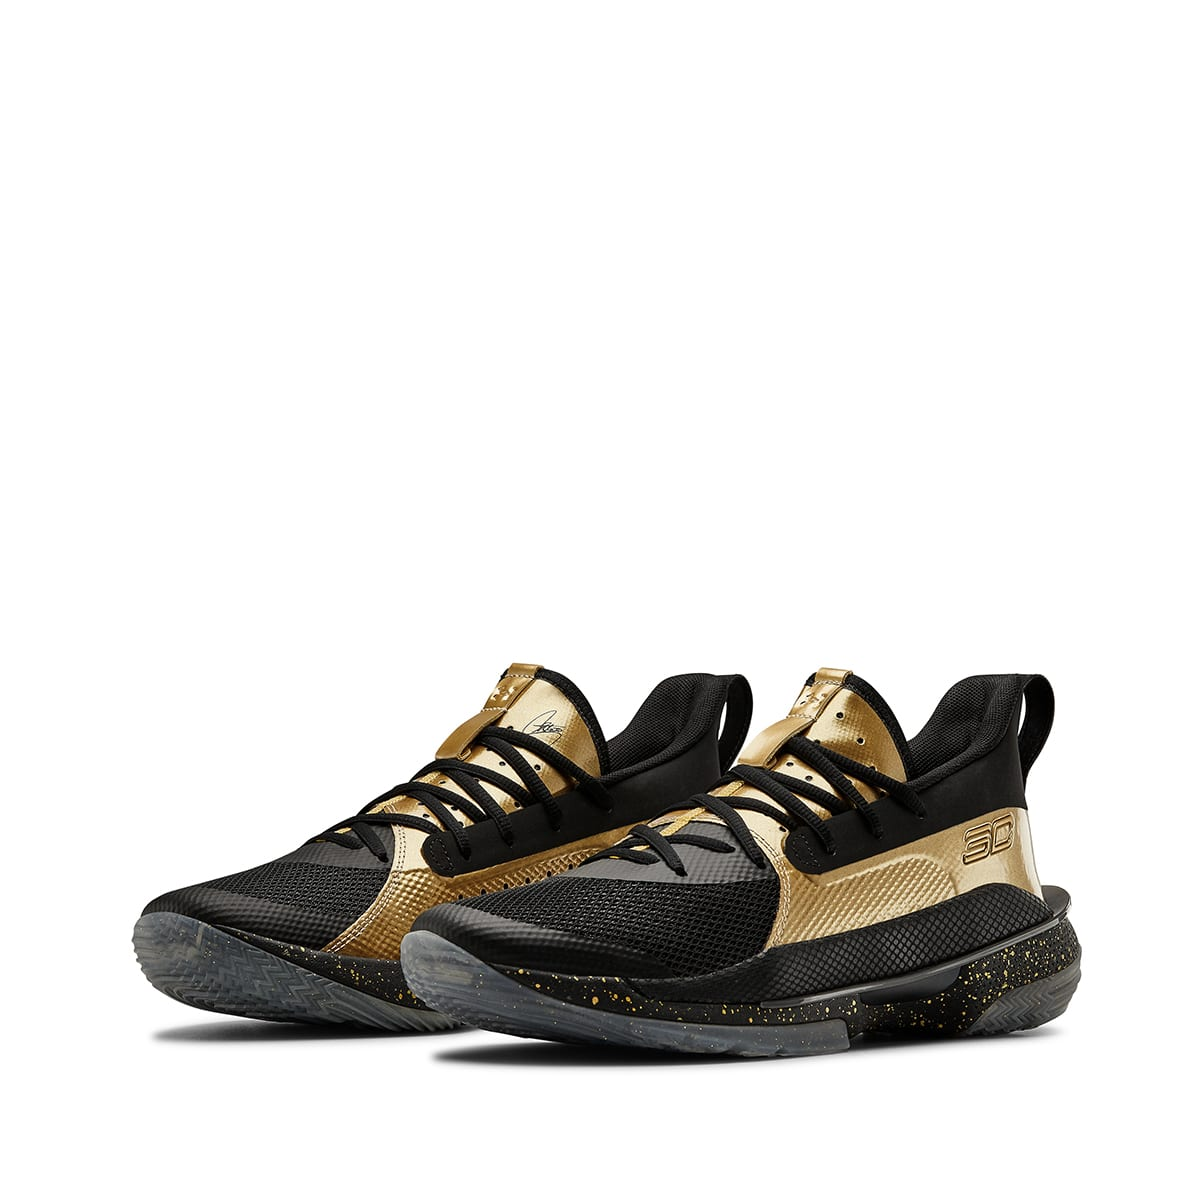 """UNDER ARMOUR CURRY 7 """"EARN IT"""" BLK/MGD/MGD 20SU-I_photo_large"""